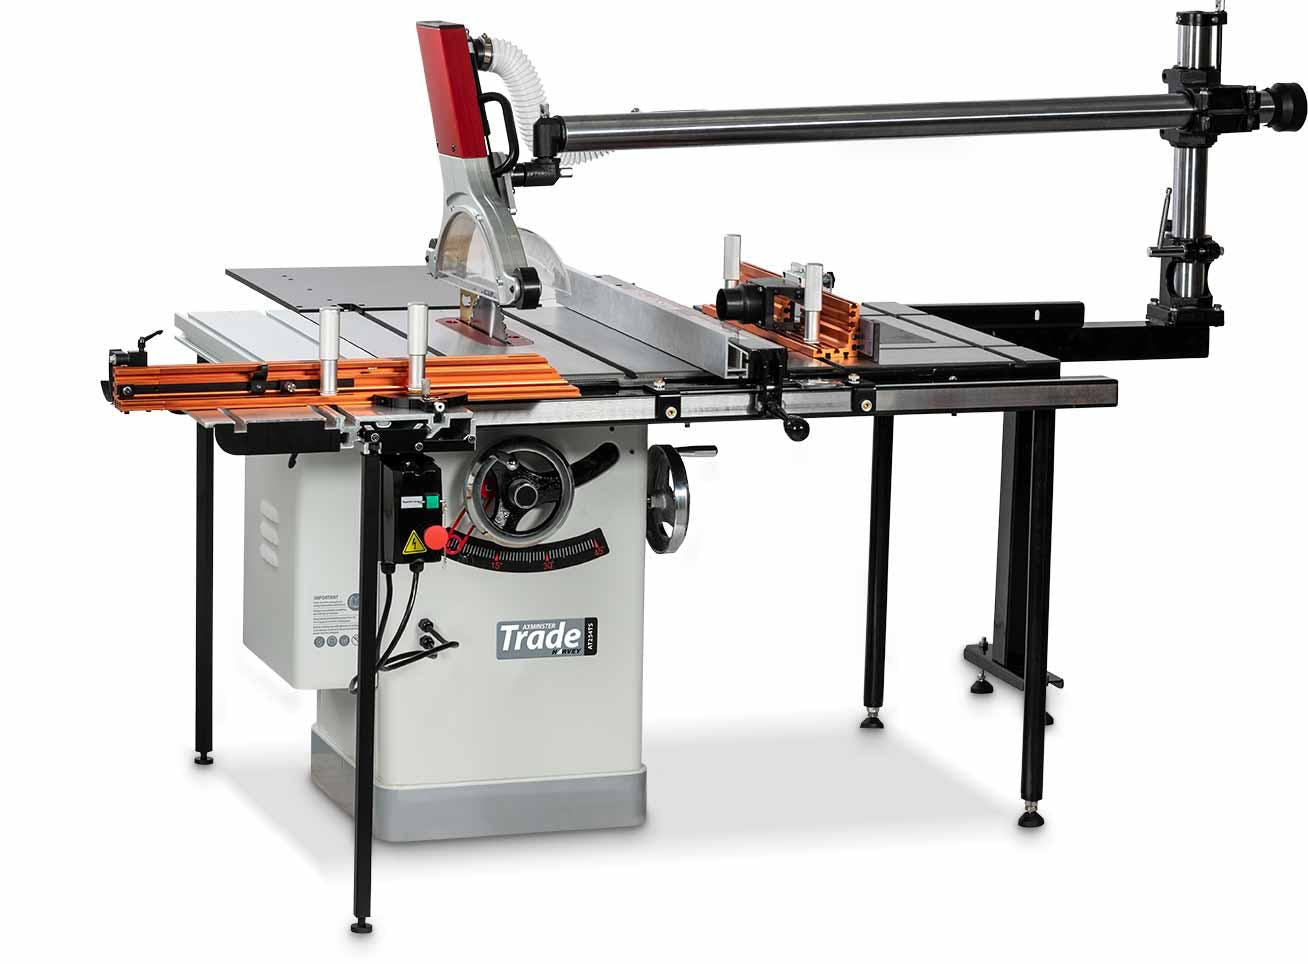 Axminster Trade AT254TS Table Saw Workstation